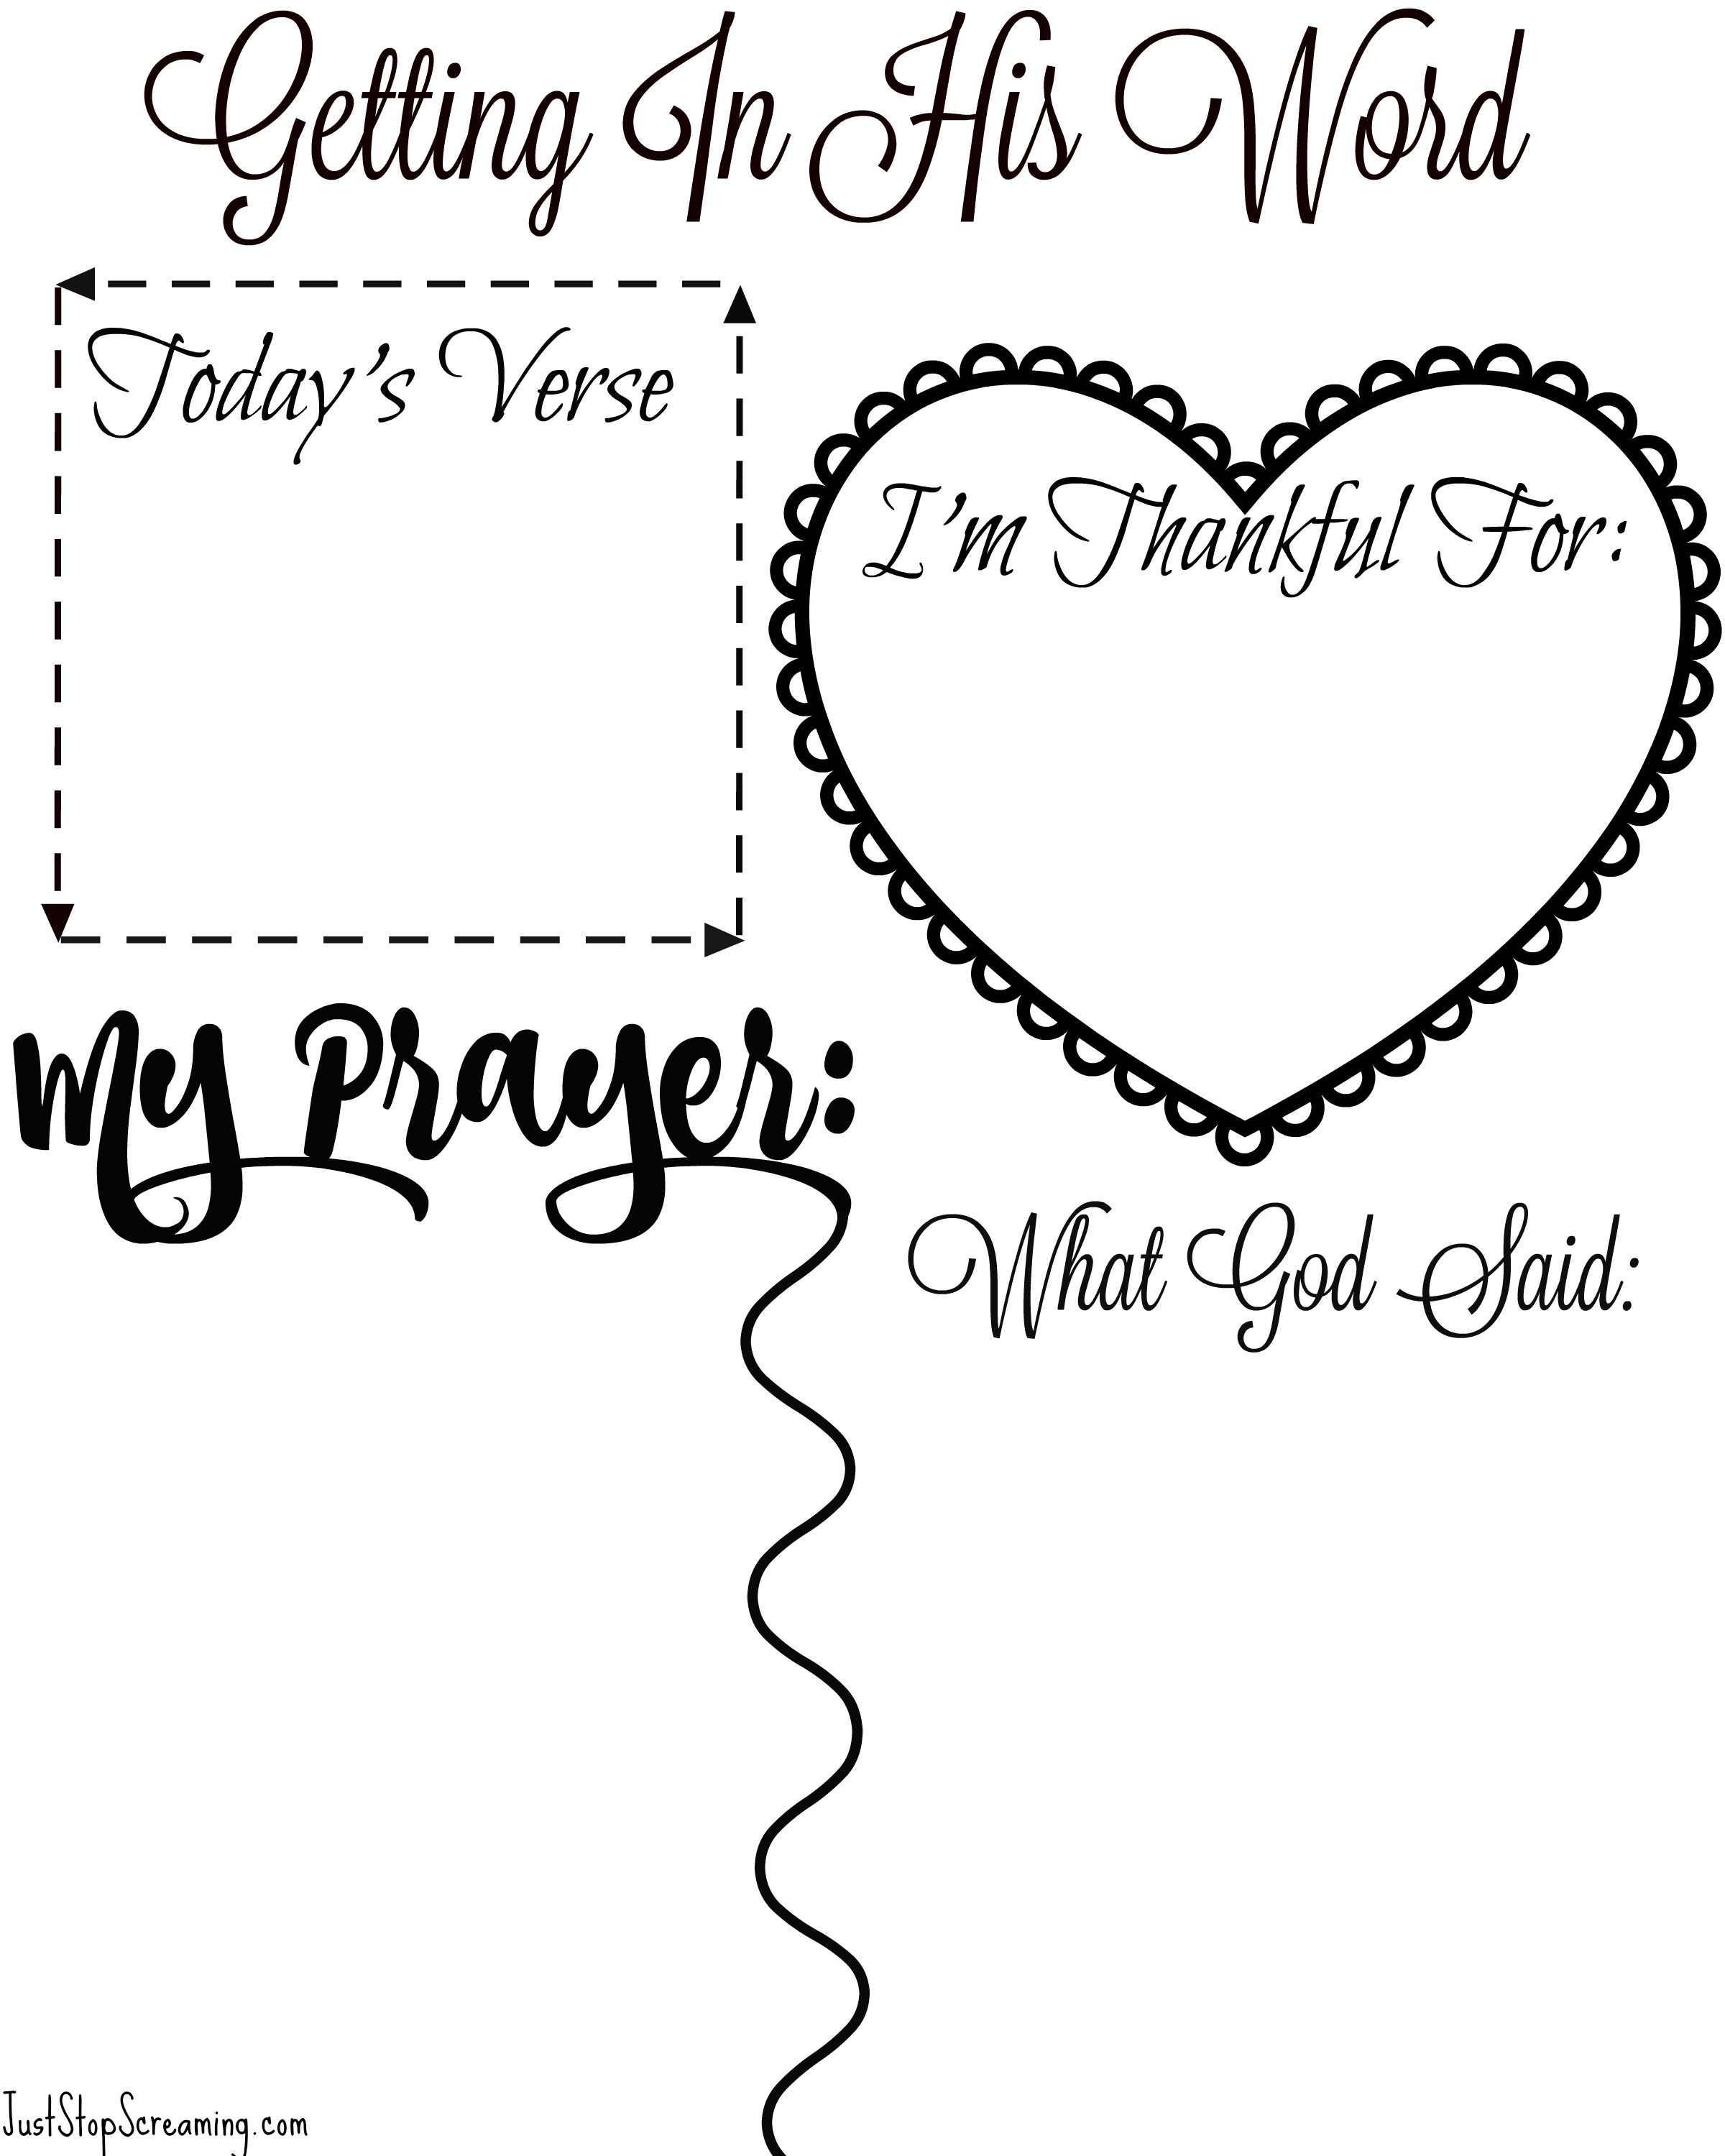 Free Bible Study Printable For Adults And Kids - Free Printable Bible Studies For Adults